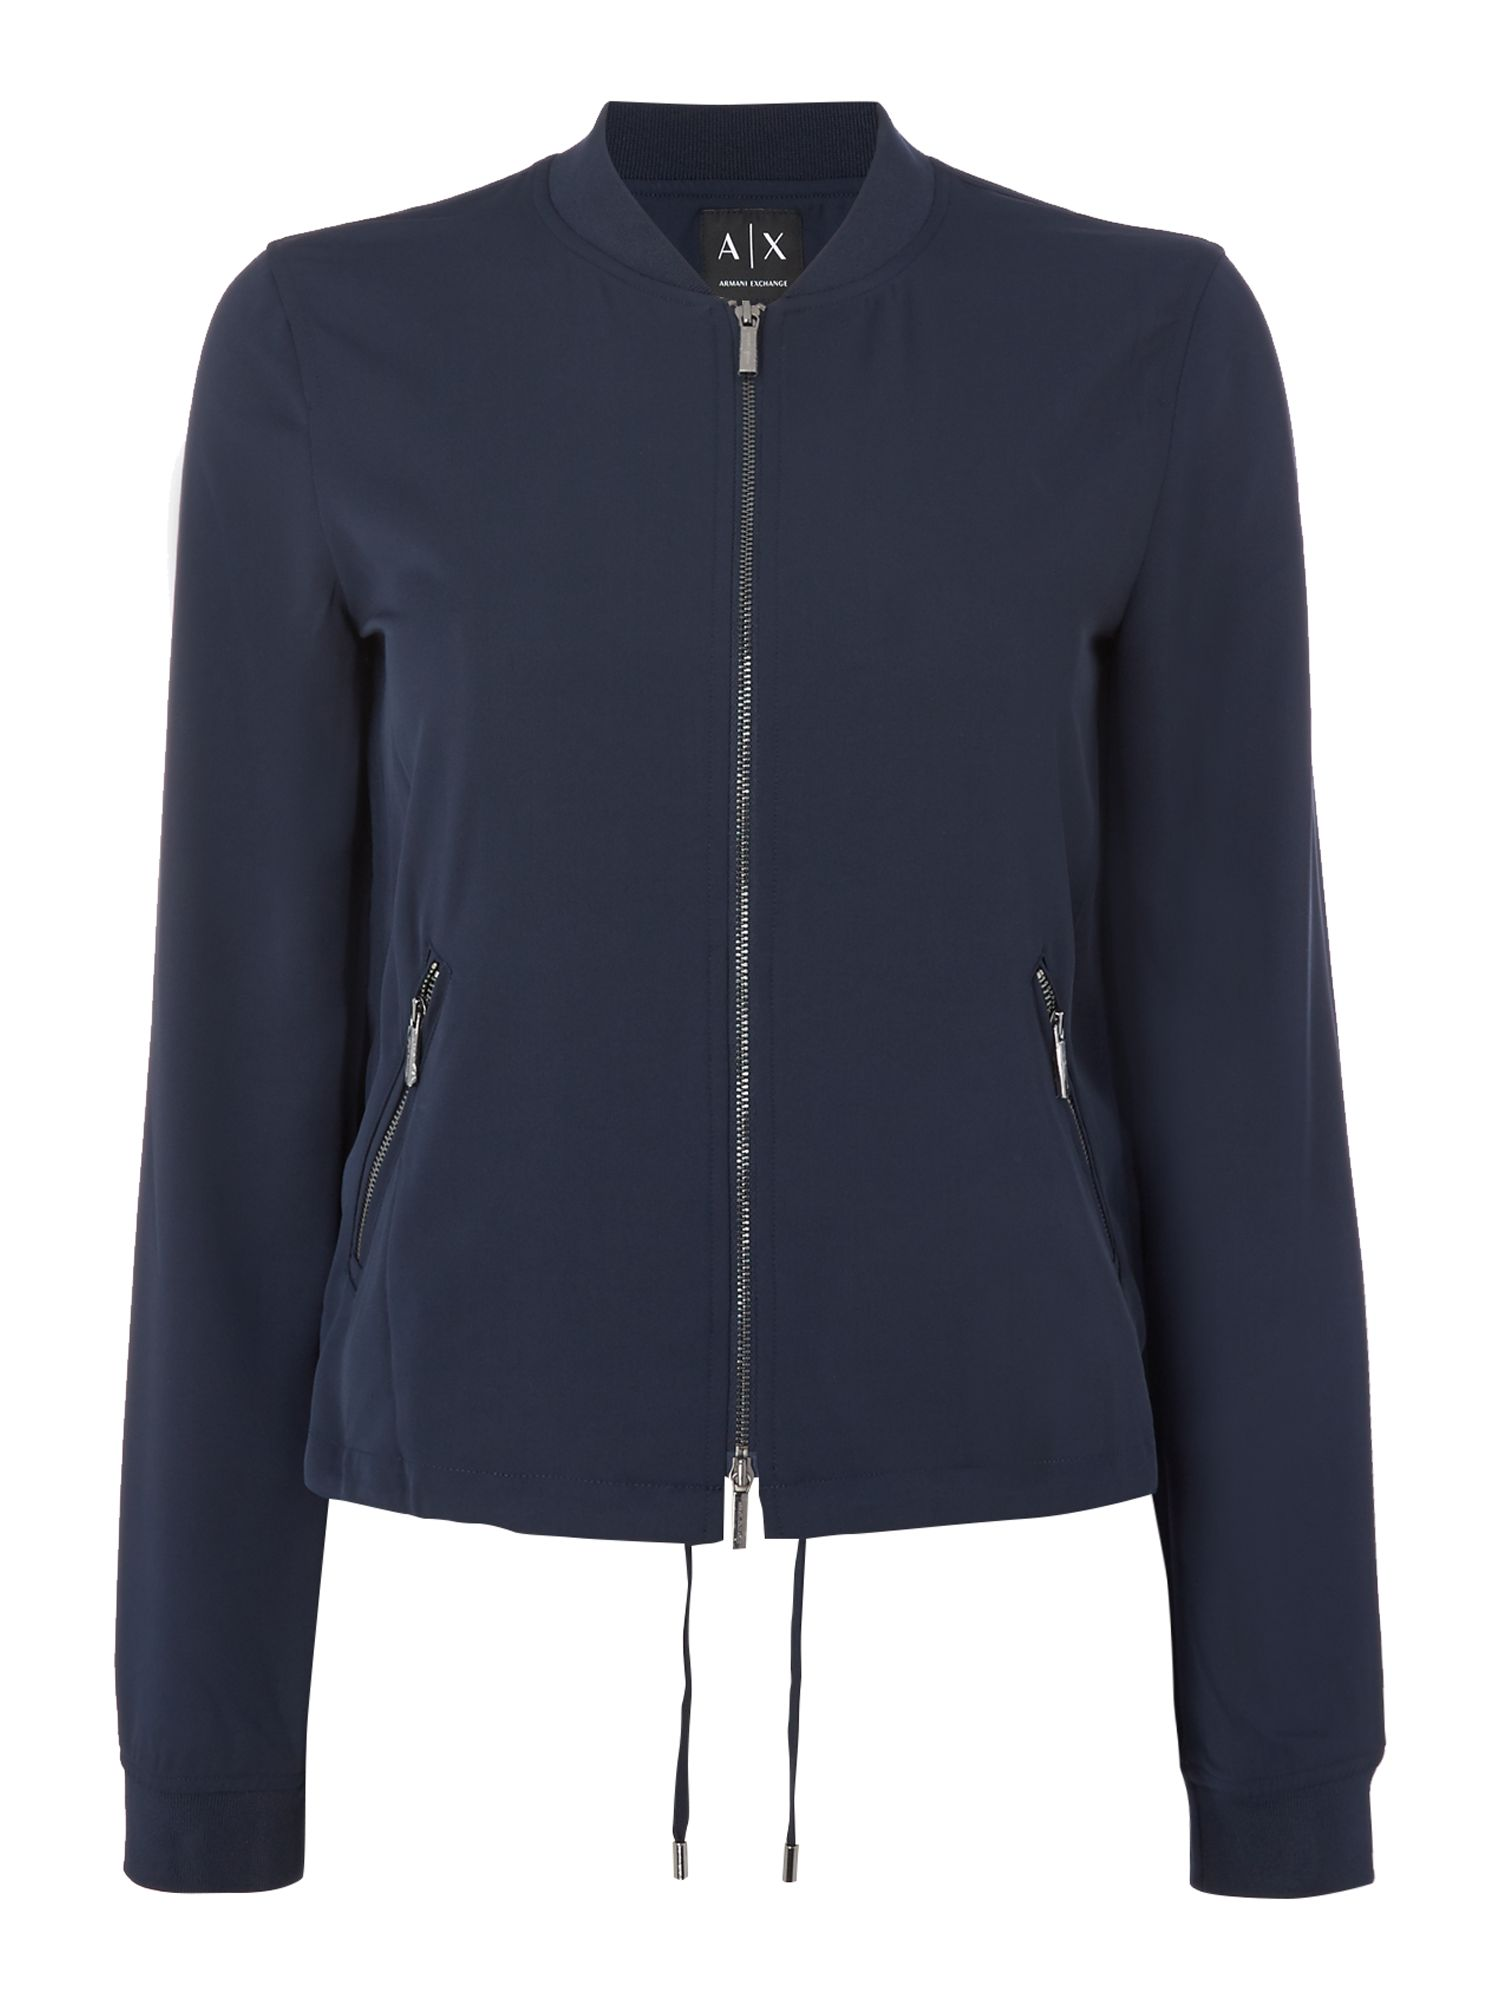 Armani Exchange Long Sleeve Bomber Jacket in navy, Blue